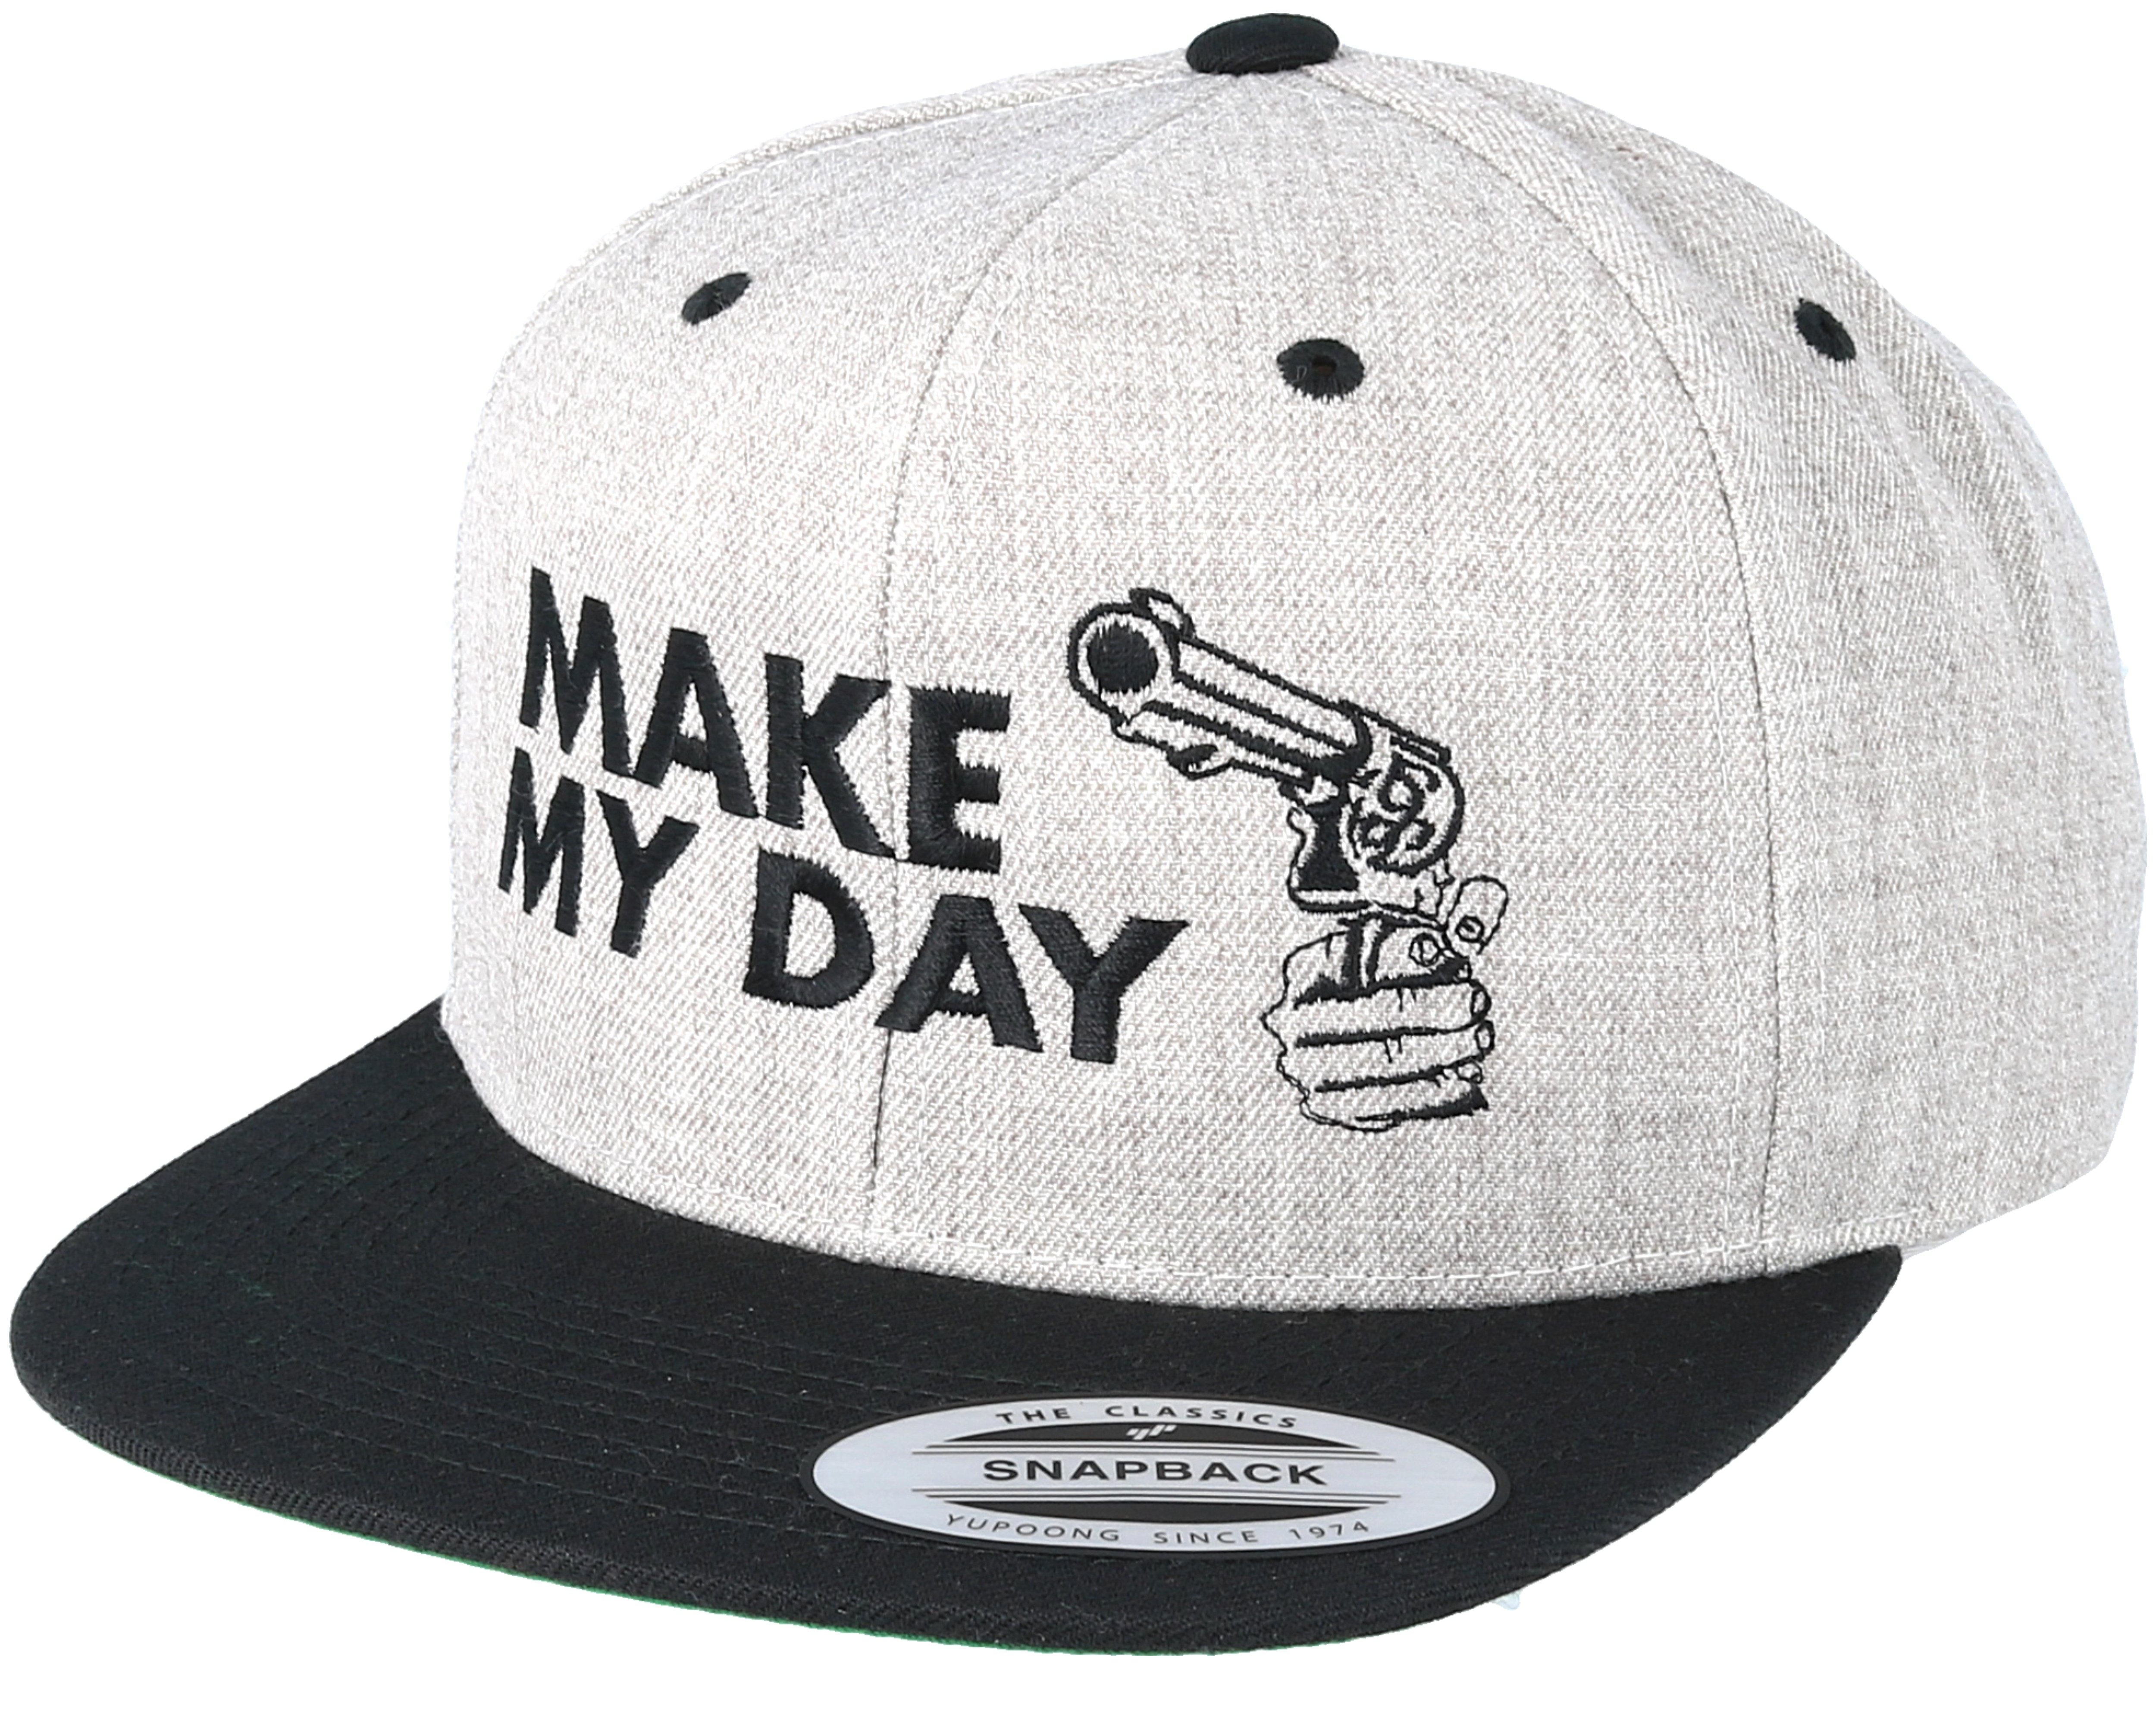 make my day grey black snapback scenes caps. Black Bedroom Furniture Sets. Home Design Ideas